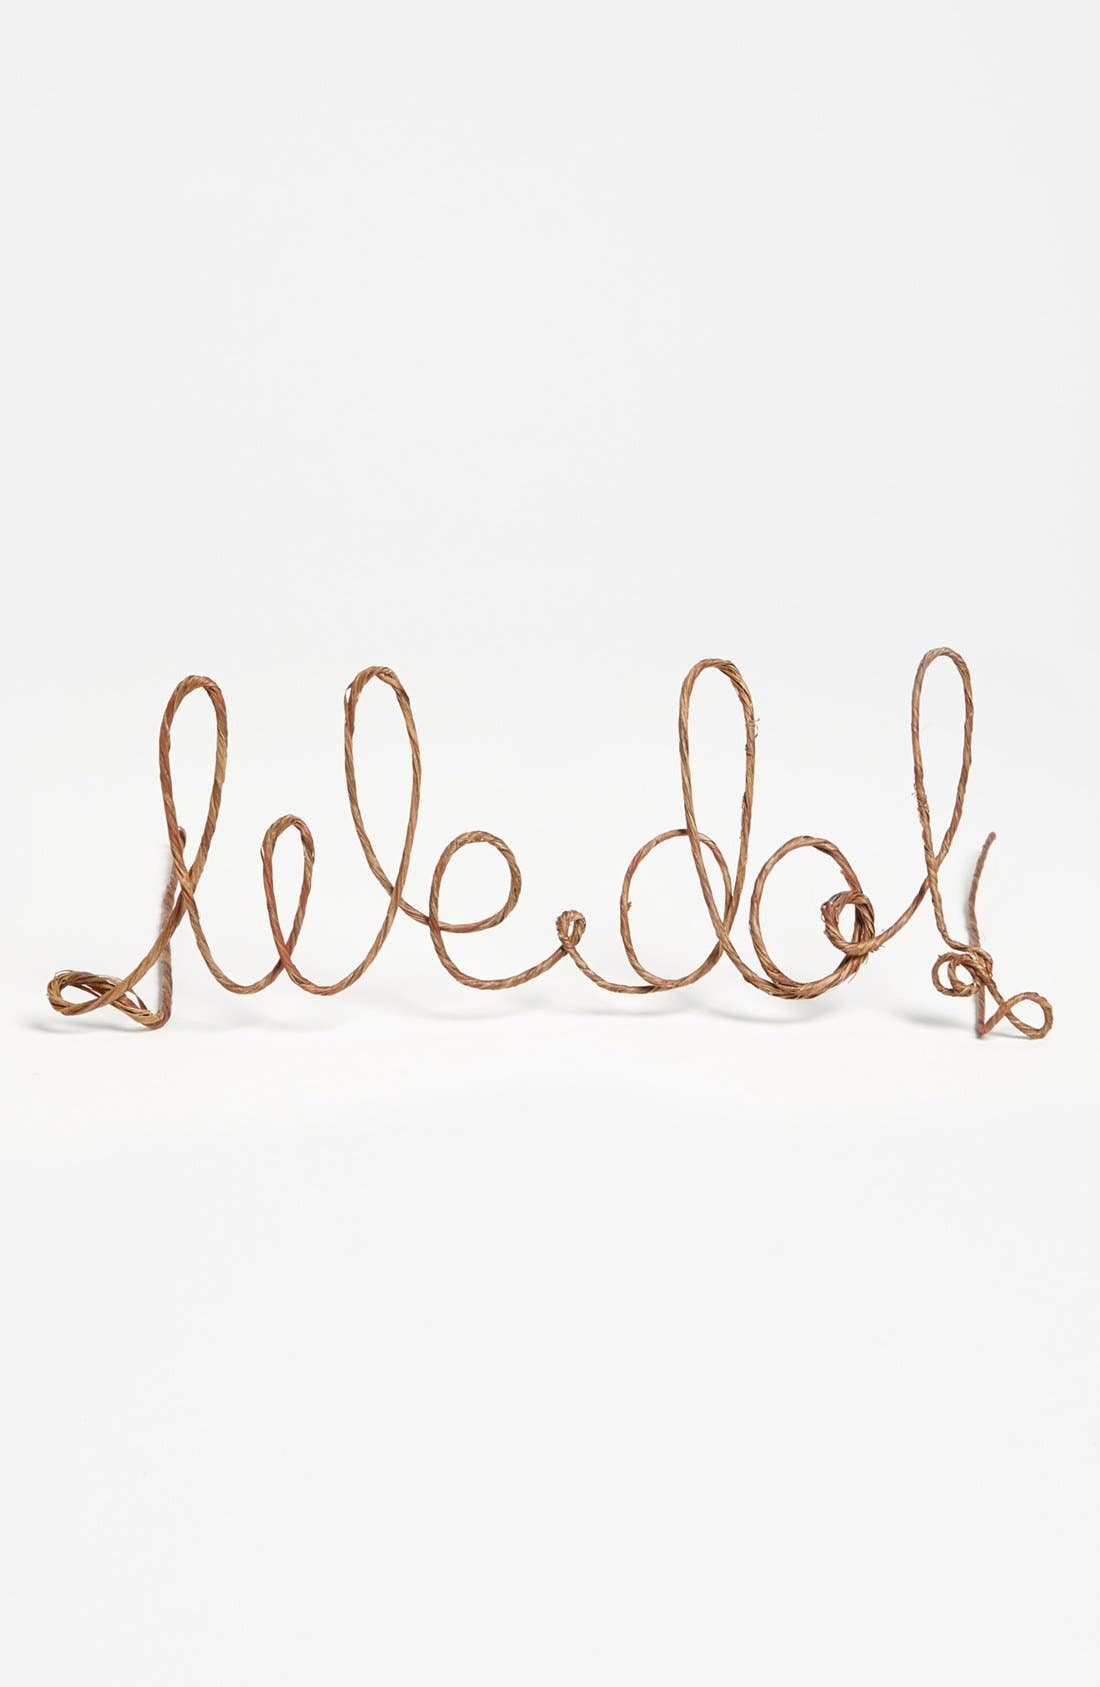 'We Do' Rustic Cake Topper,                             Alternate thumbnail 3, color,                             200